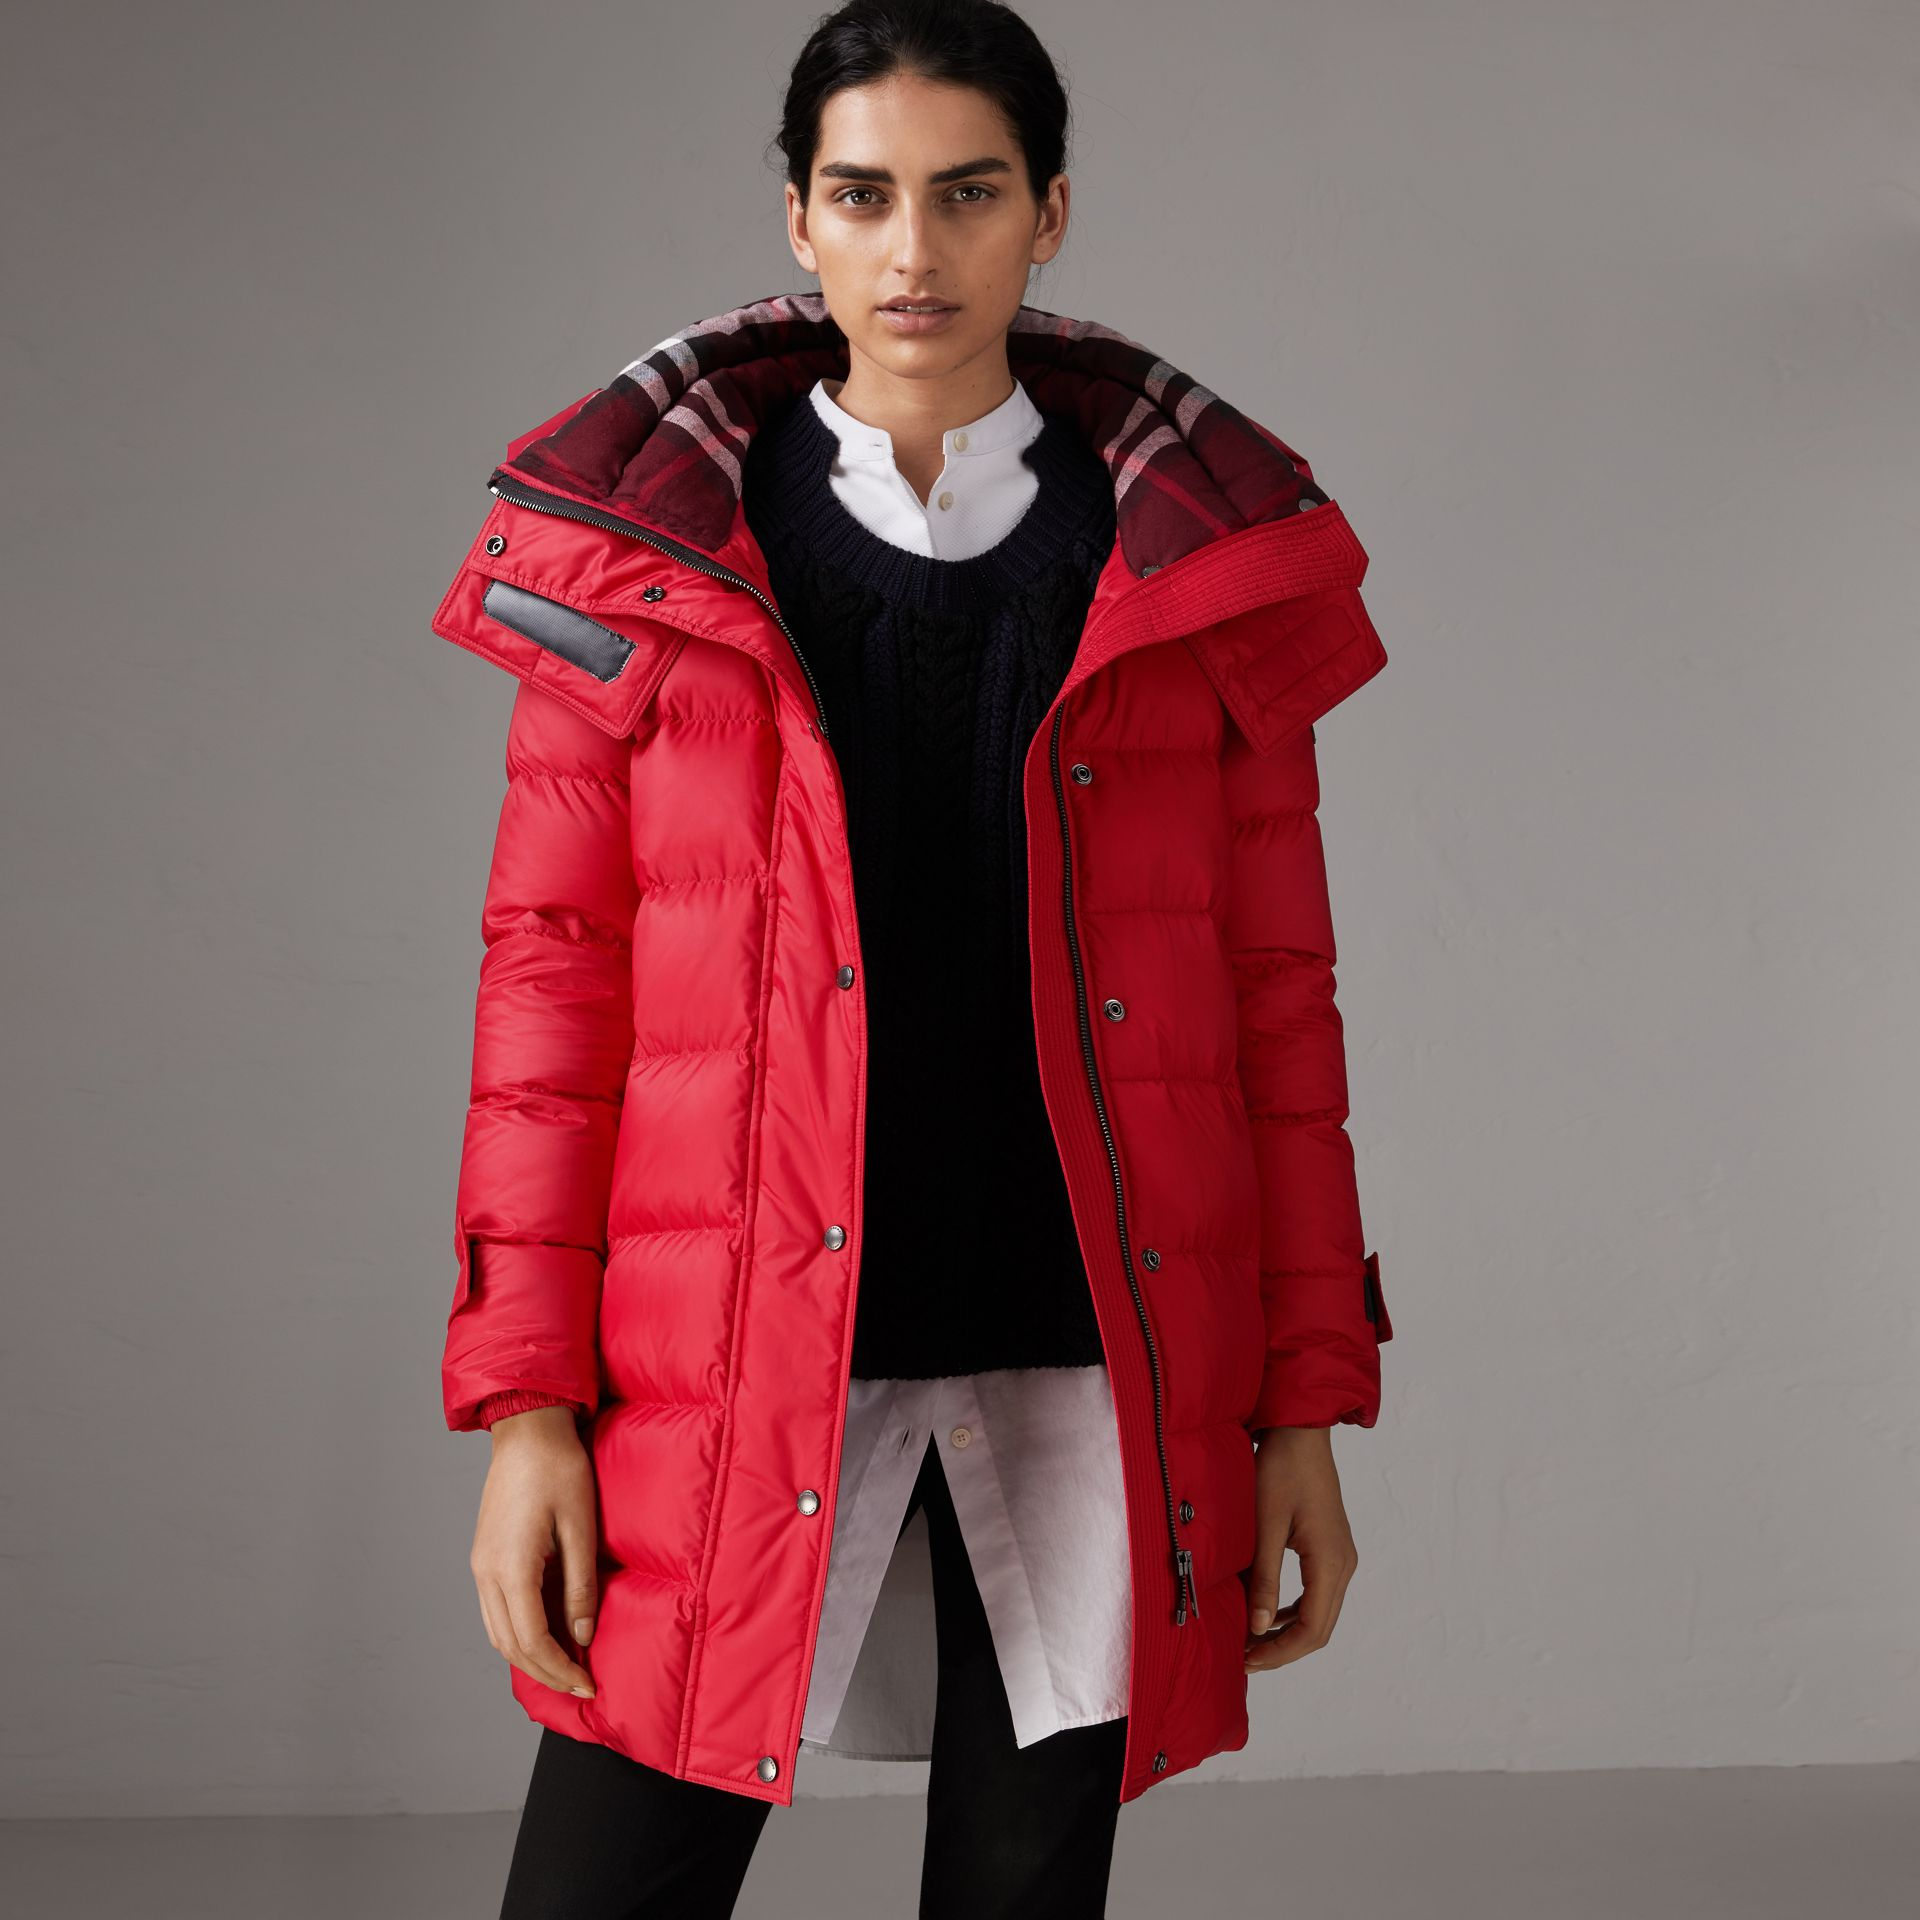 Down-filled Puffer Coat With Detachable Hood in Parade Red - Women | Burberry Hong Kong - gallery image 0